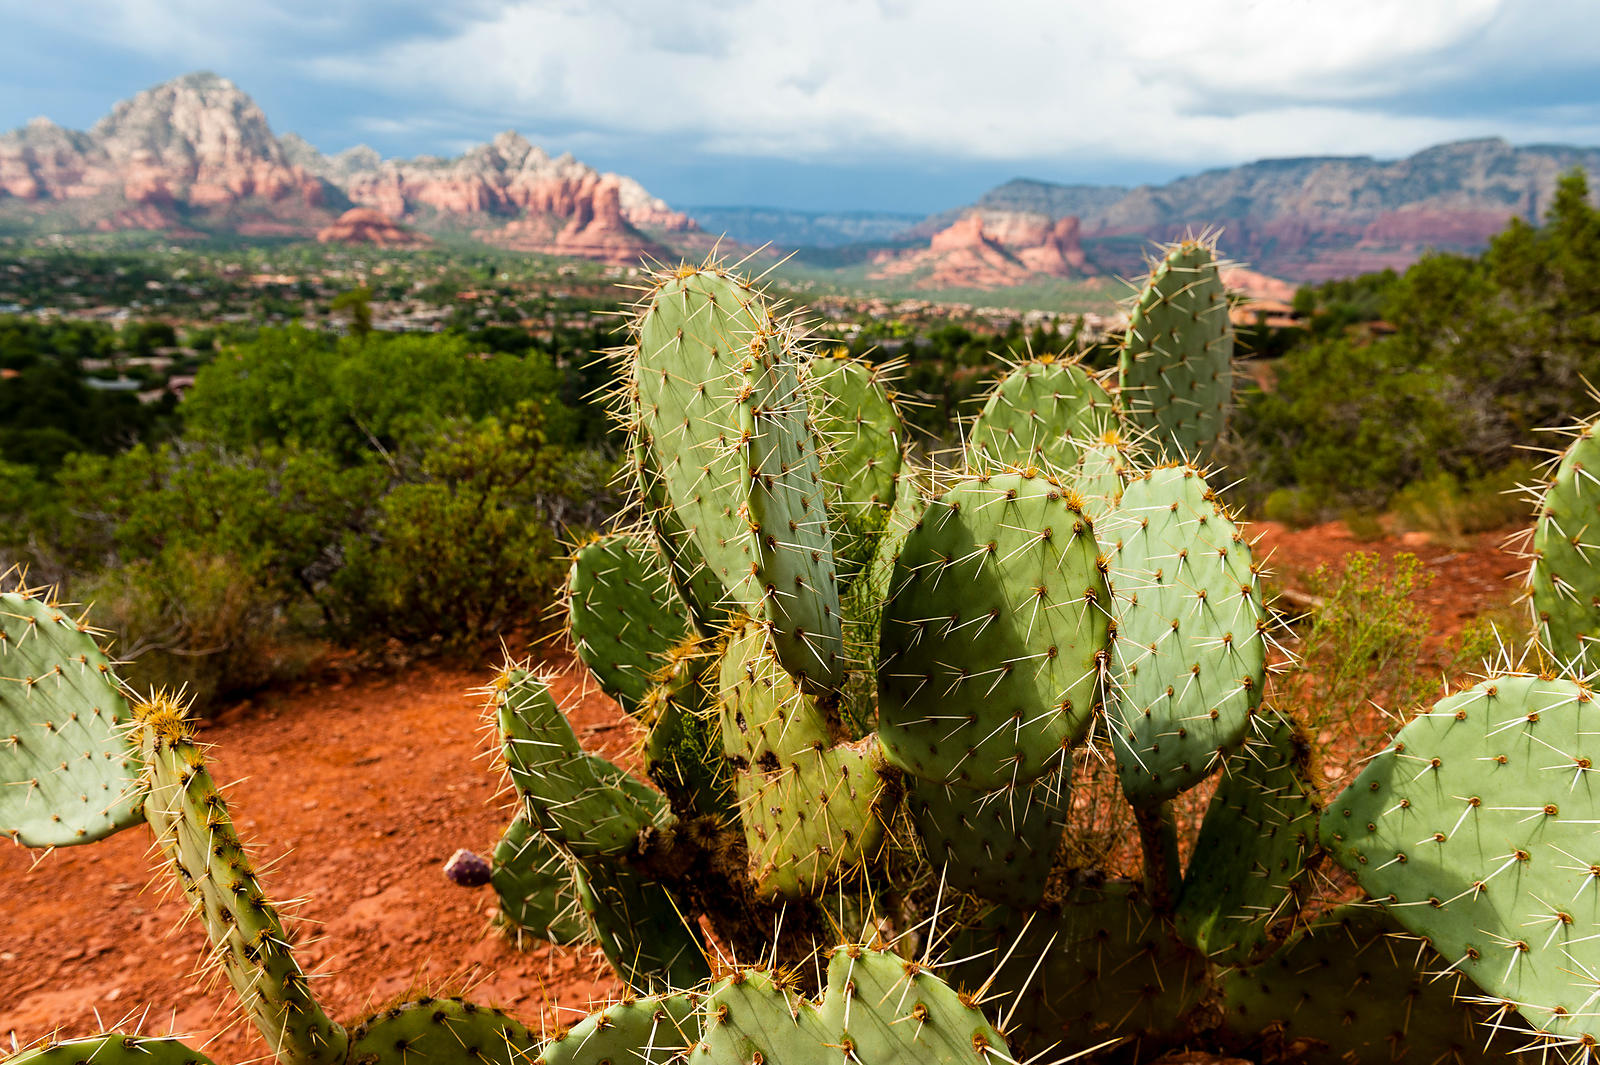 USA, Arizona, Sedona